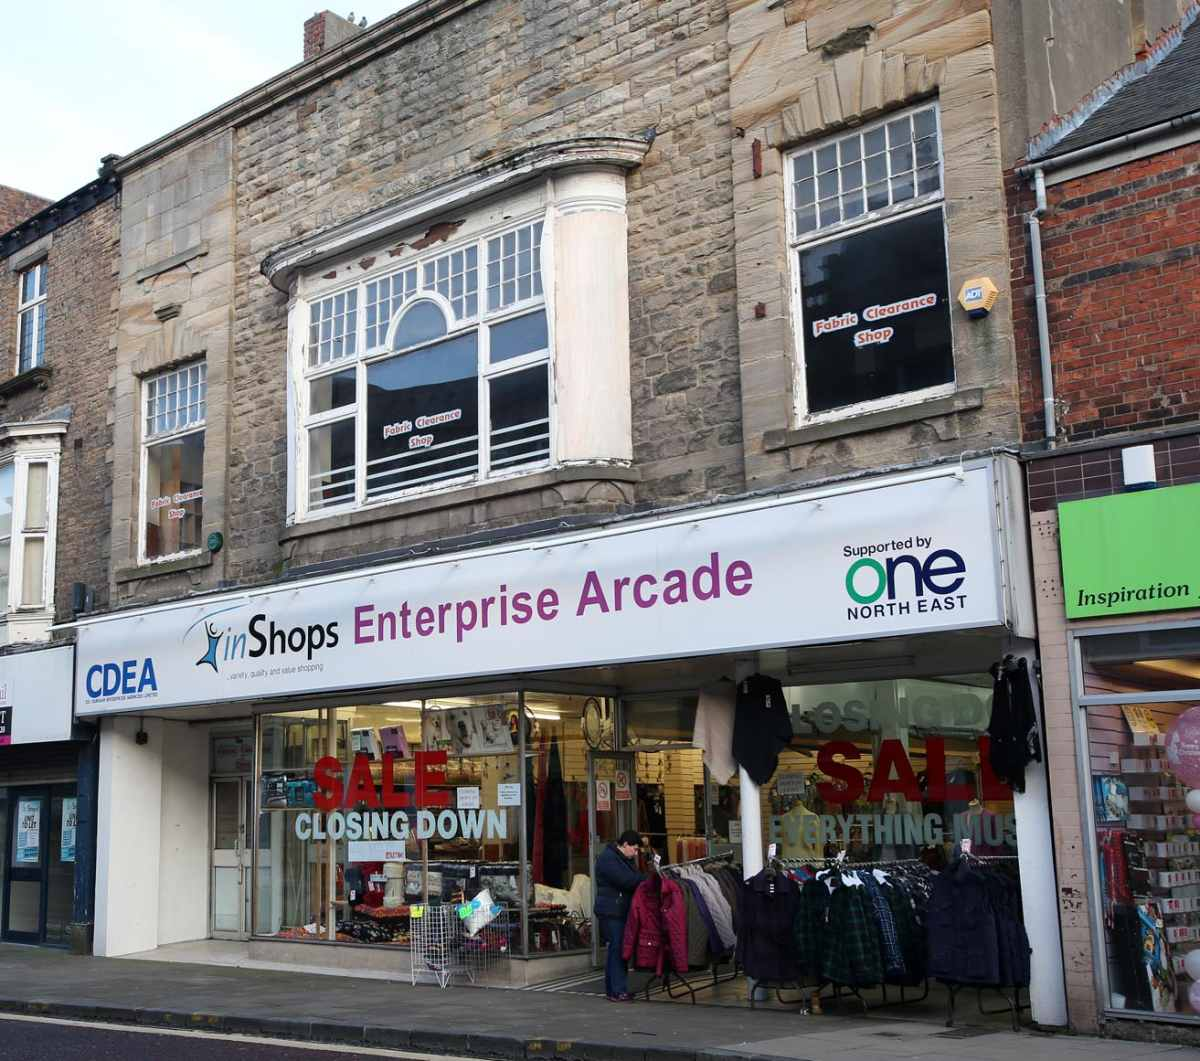 InShops Enterprise Arcade, Newgate, Bishop Auckland  -  the business has gone into administration.